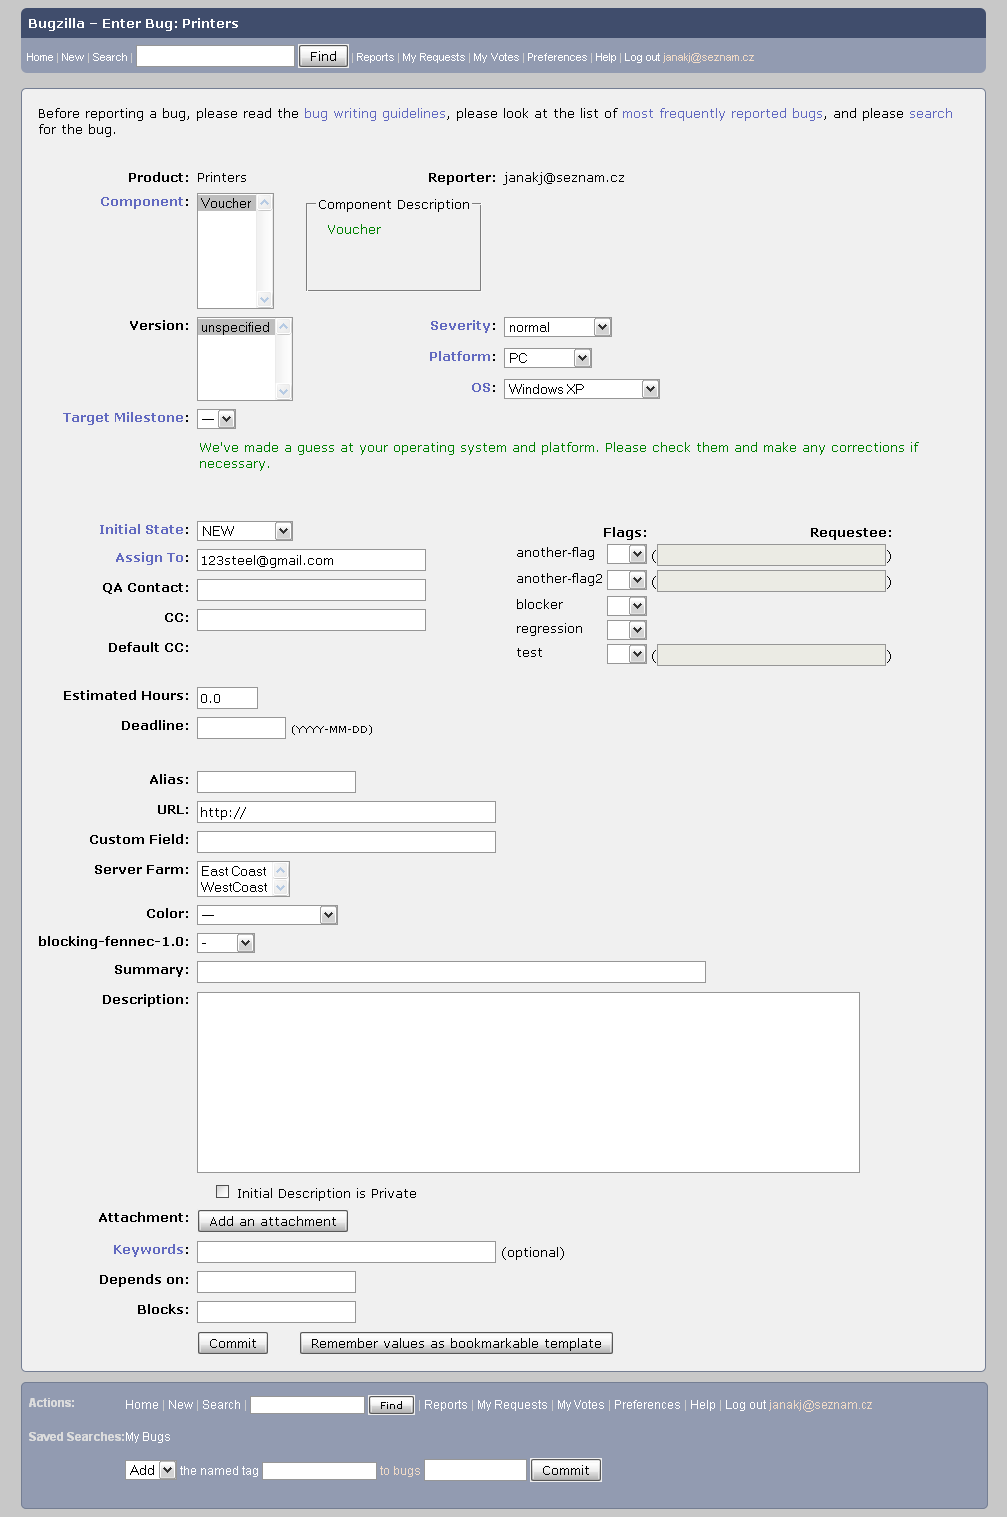 Screen shot 3: Bugzilla use-case - New bug report